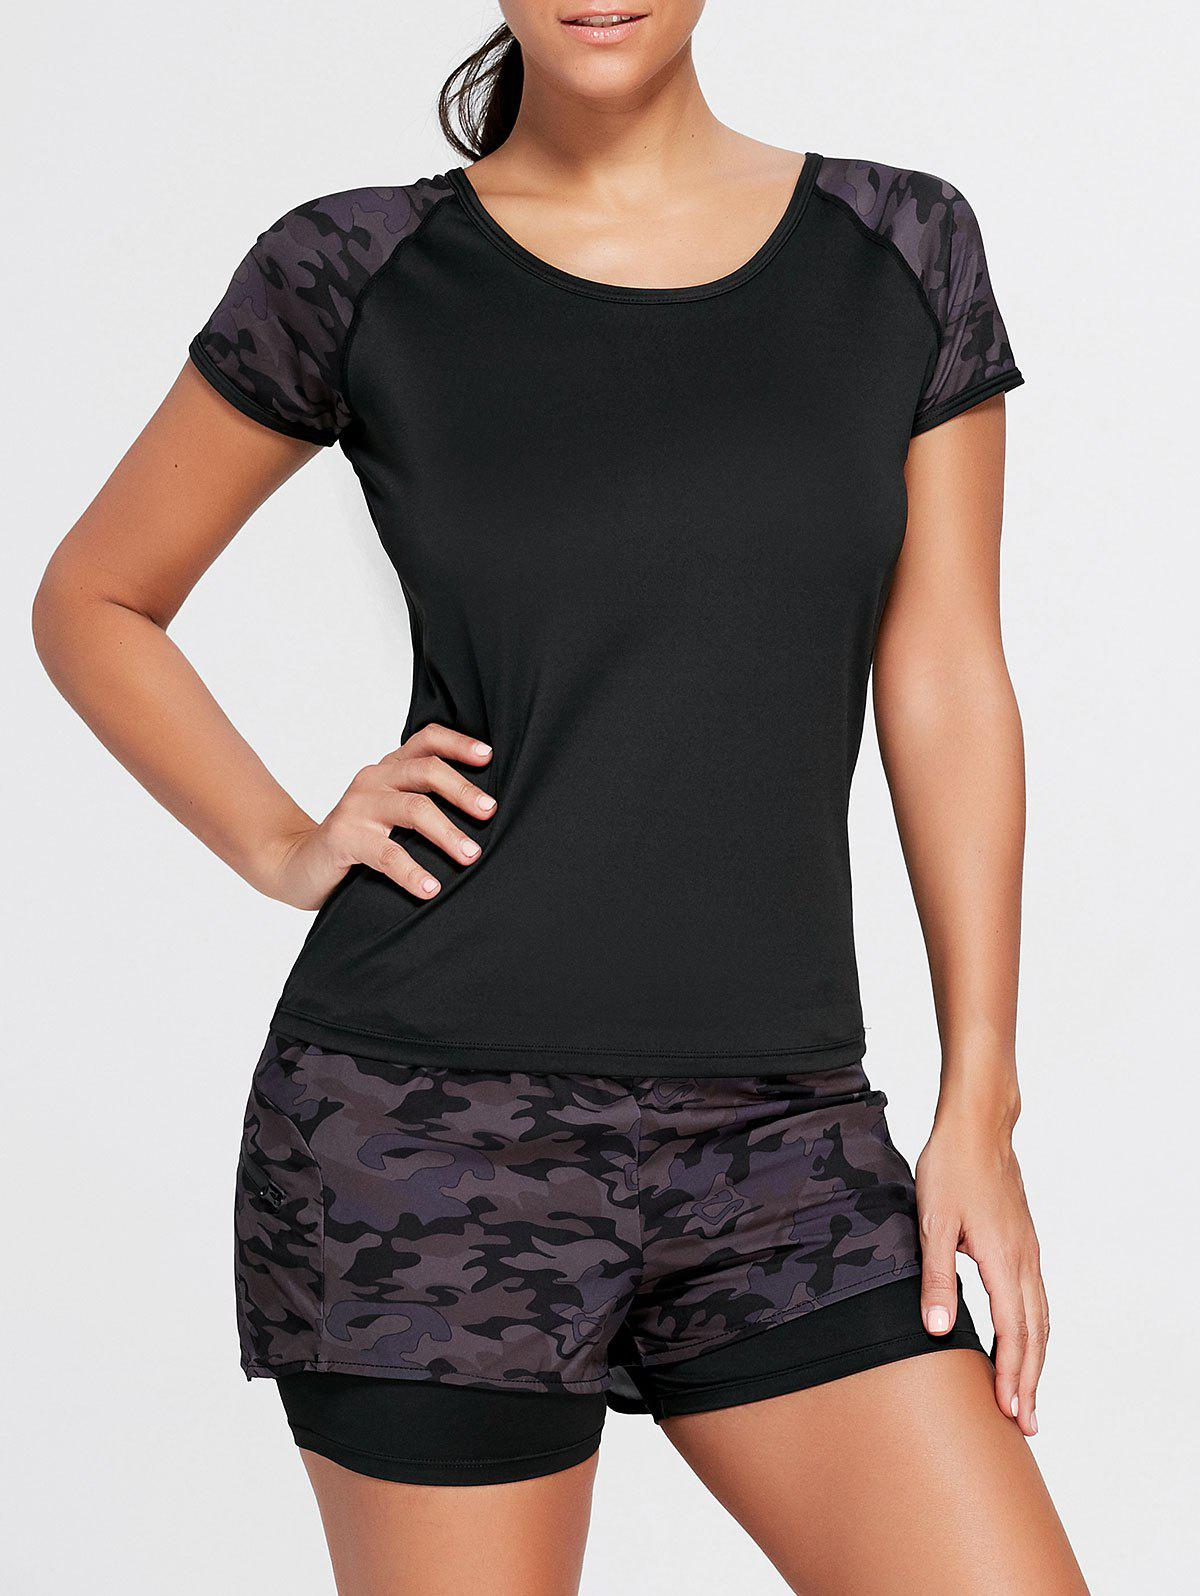 Camo Short Sleeve Sports Raglan Tee - BLACK M